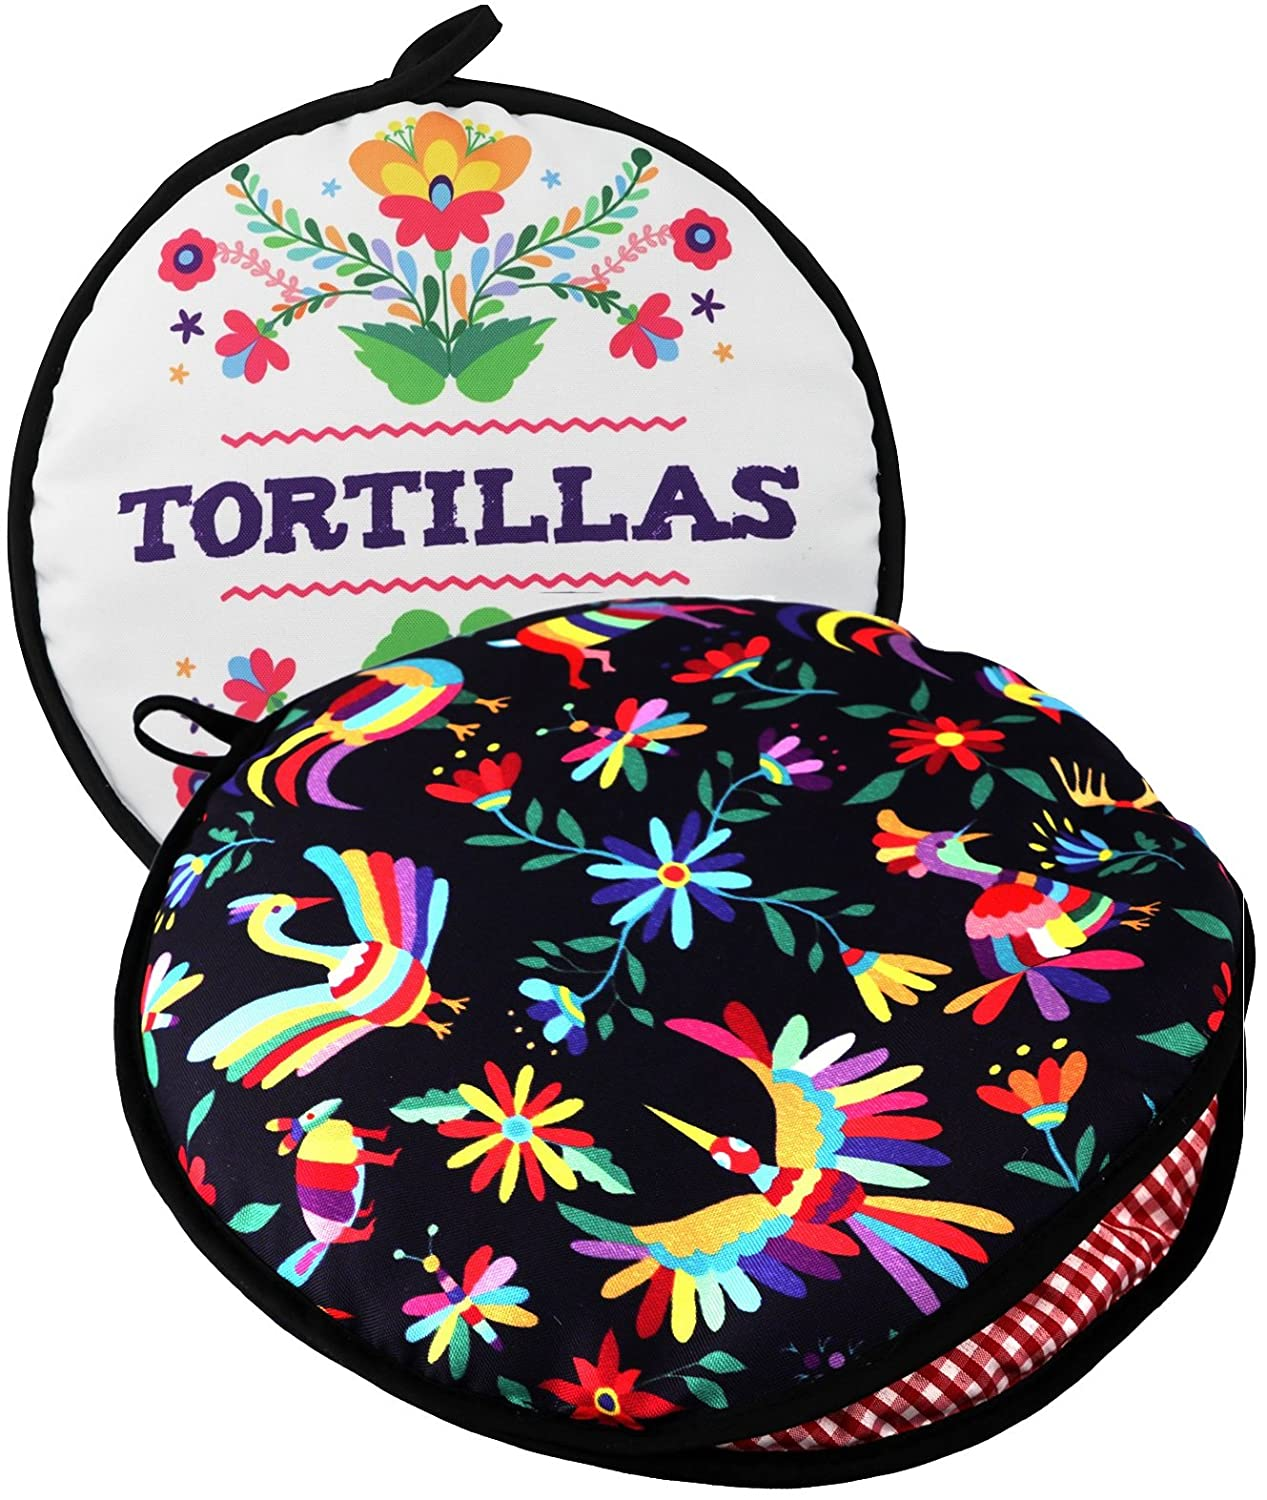 "TWO SIDED! Tortilla Warmer, Size 11"" Insulated and Microwaveable, Fabric Pouch Keeps Them Warm for up to One Hour! Perfect Holder for Corn & Flour For All Occasions! By ENdeas"